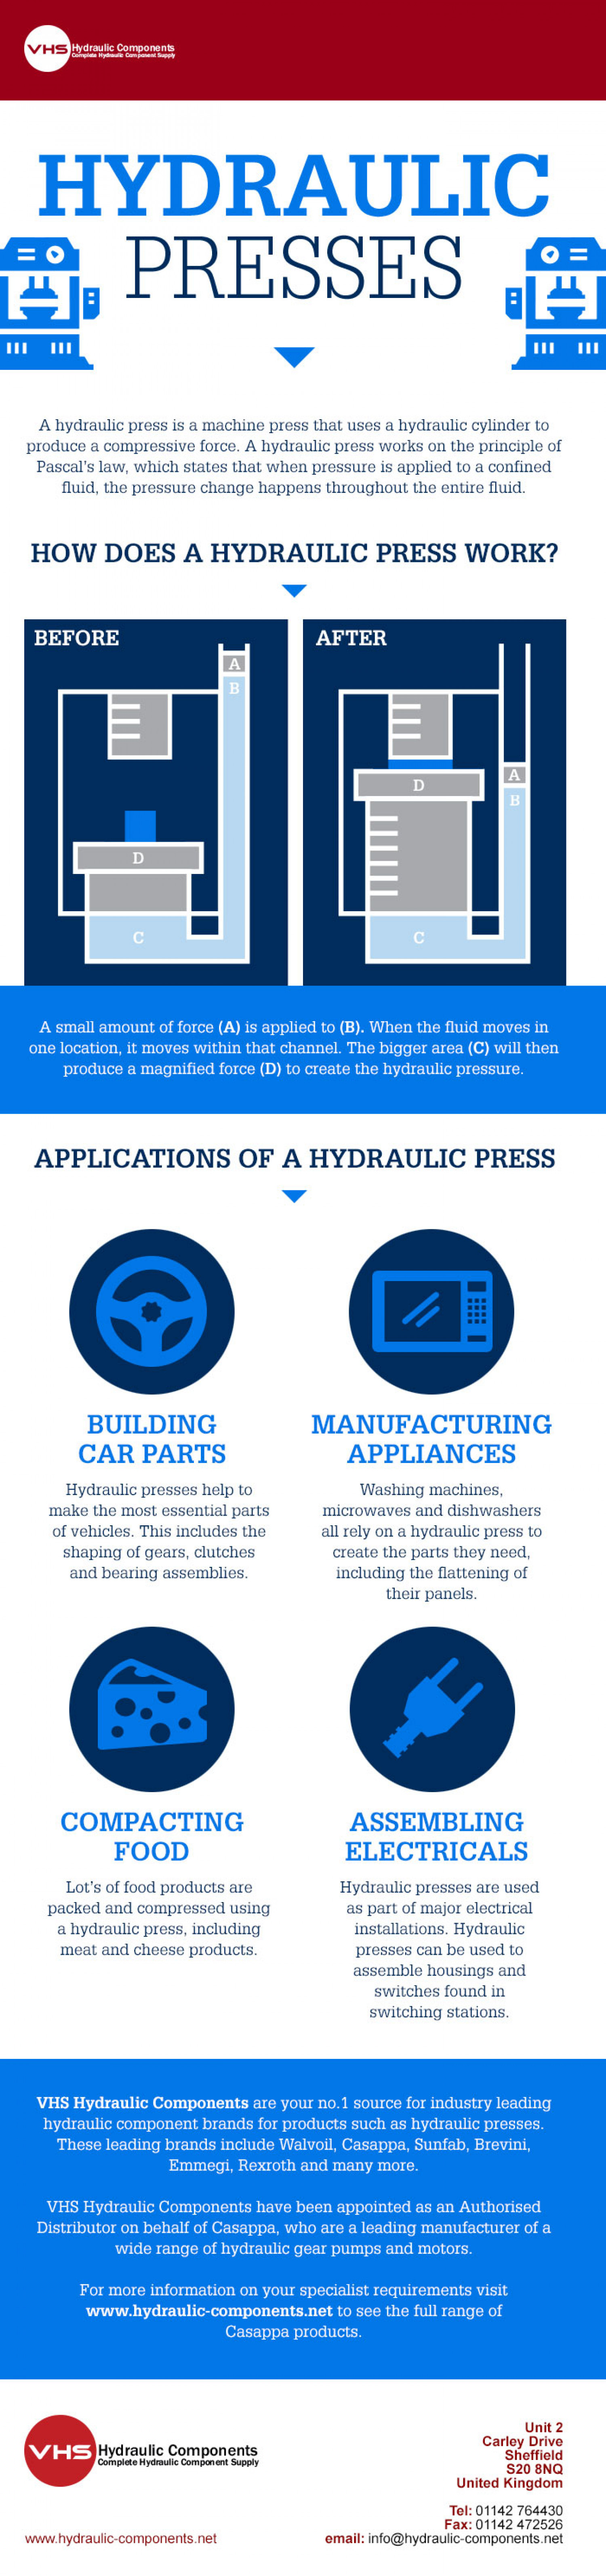 Hydraulic Presses Infographic